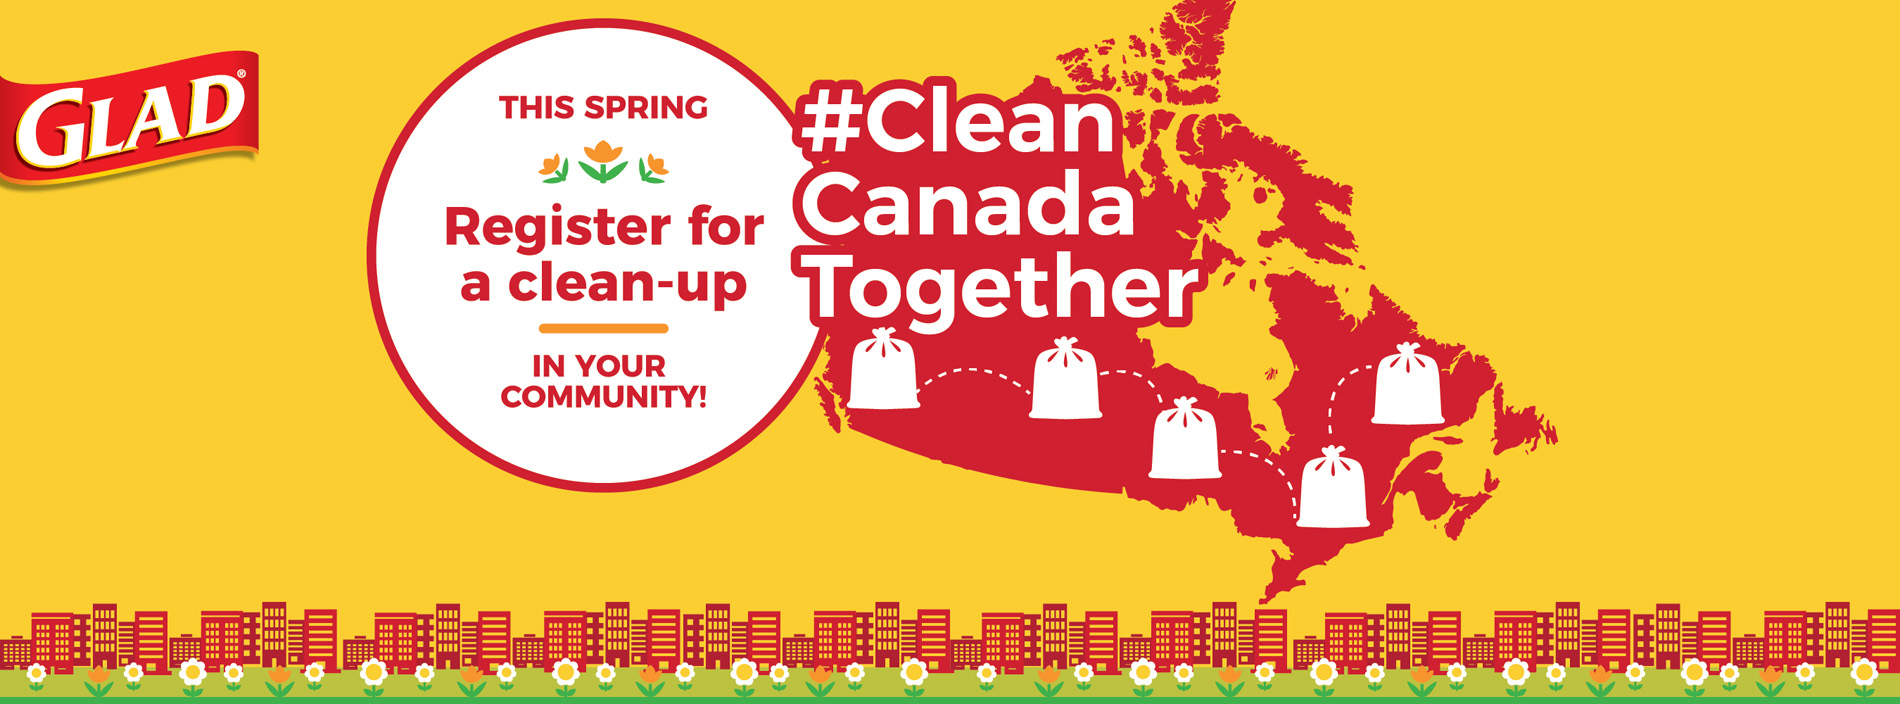 Clean Canada Together